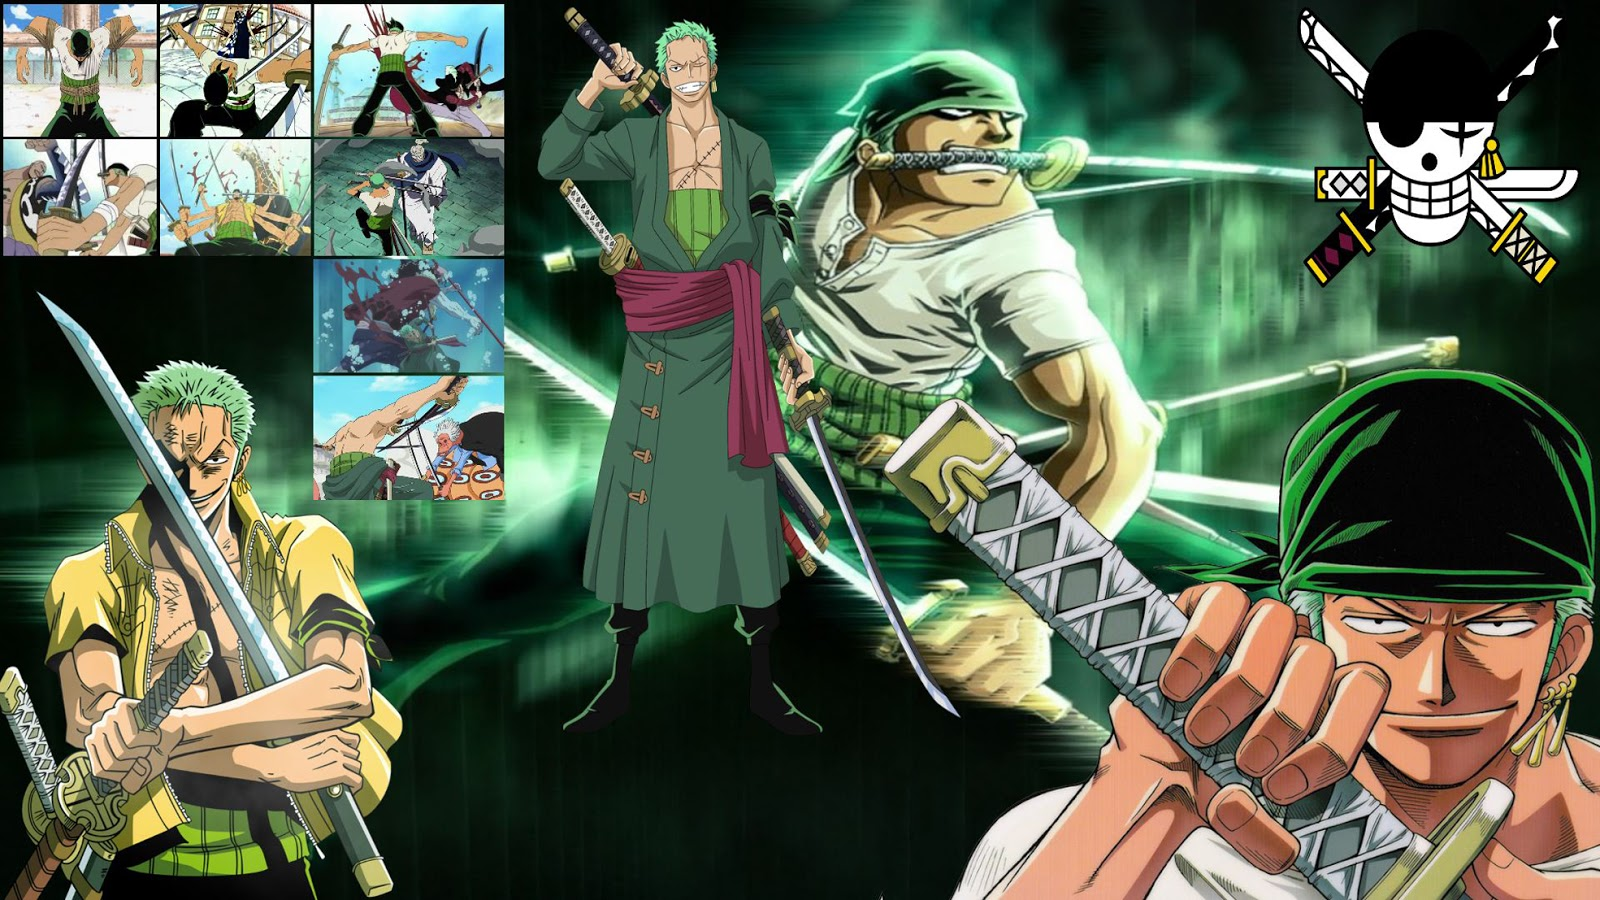 roronoa zoro pictures roronoa zoro images roronoa zoro one pieceZoro New World Wallpaper